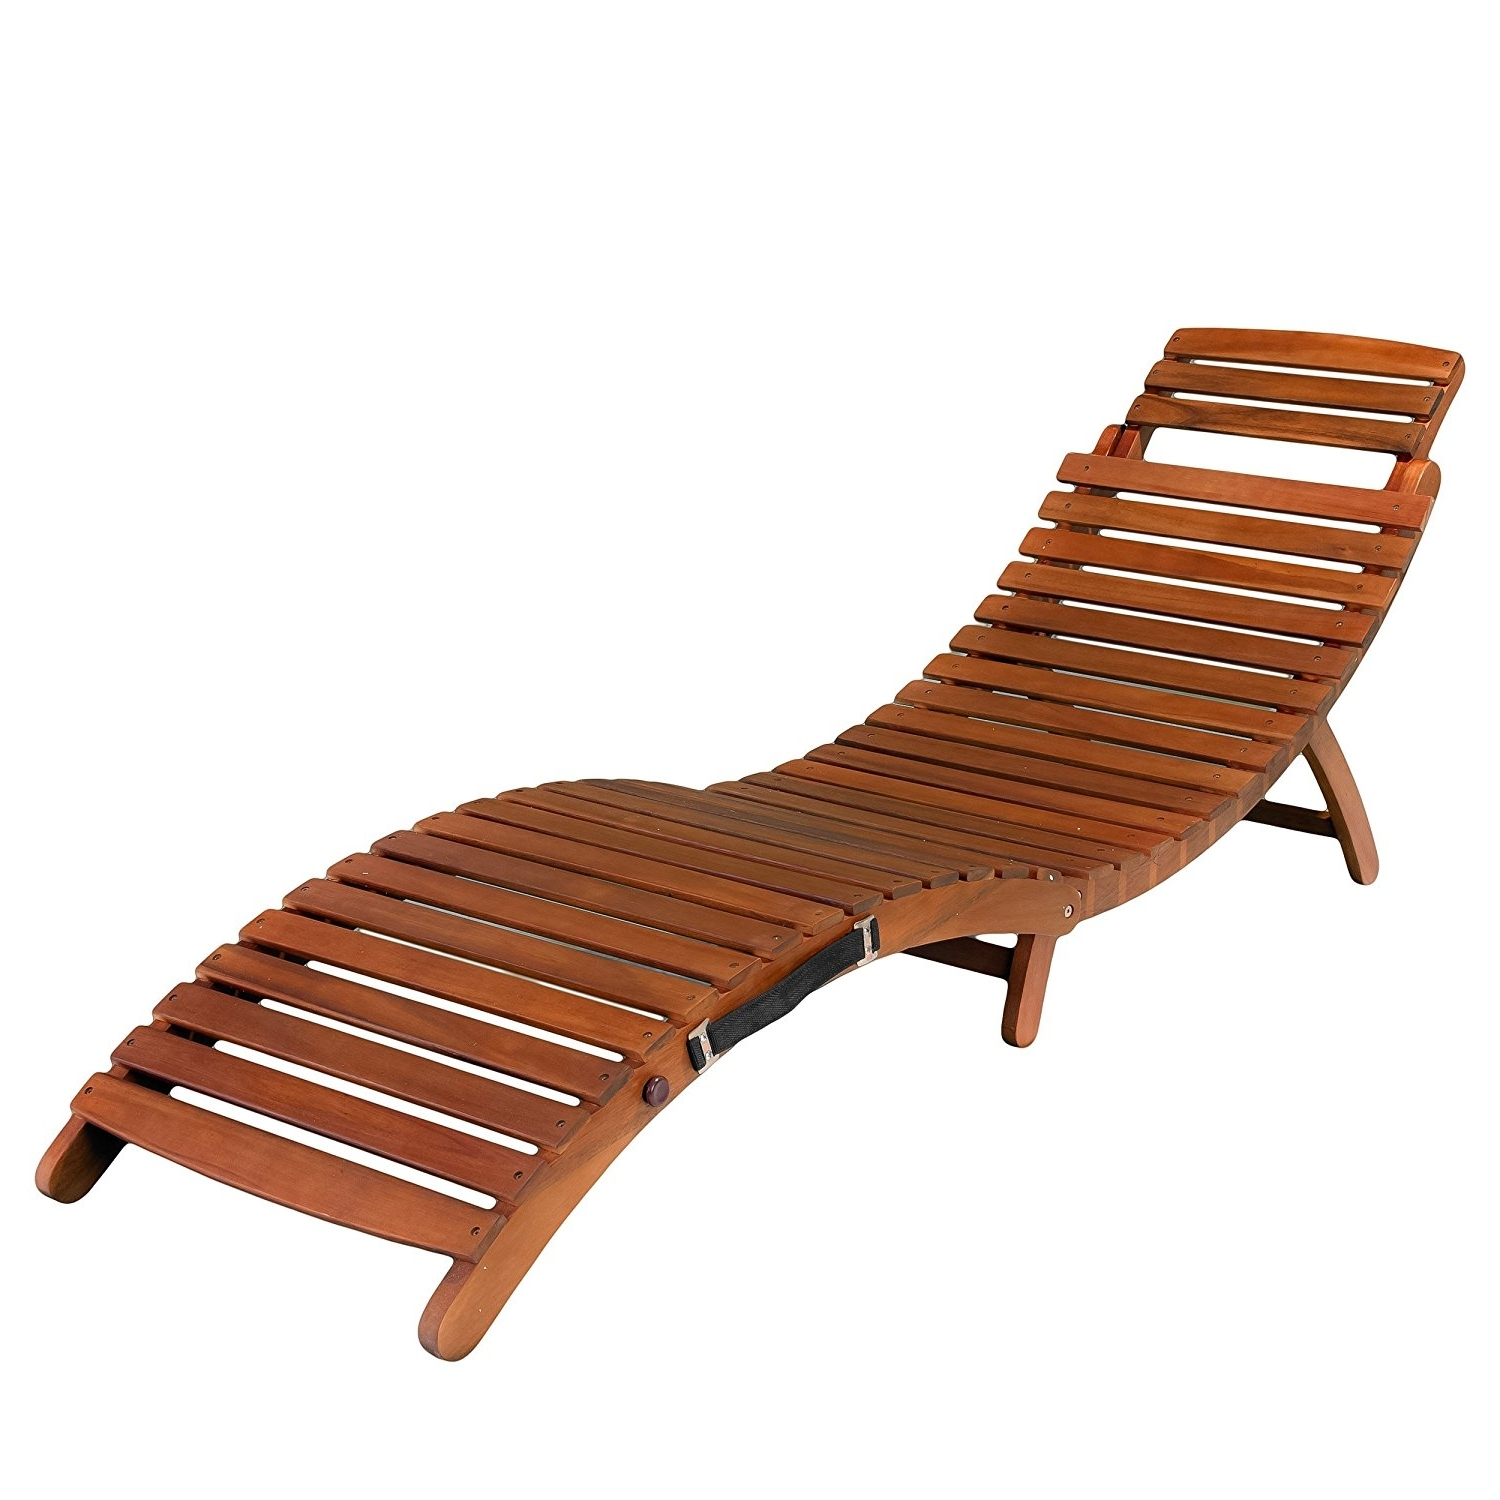 Wood Chaise Lounges Throughout Famous Amazon: Best Selling Del Rio Wood Outdoor Chaise Lounge (View 14 of 15)